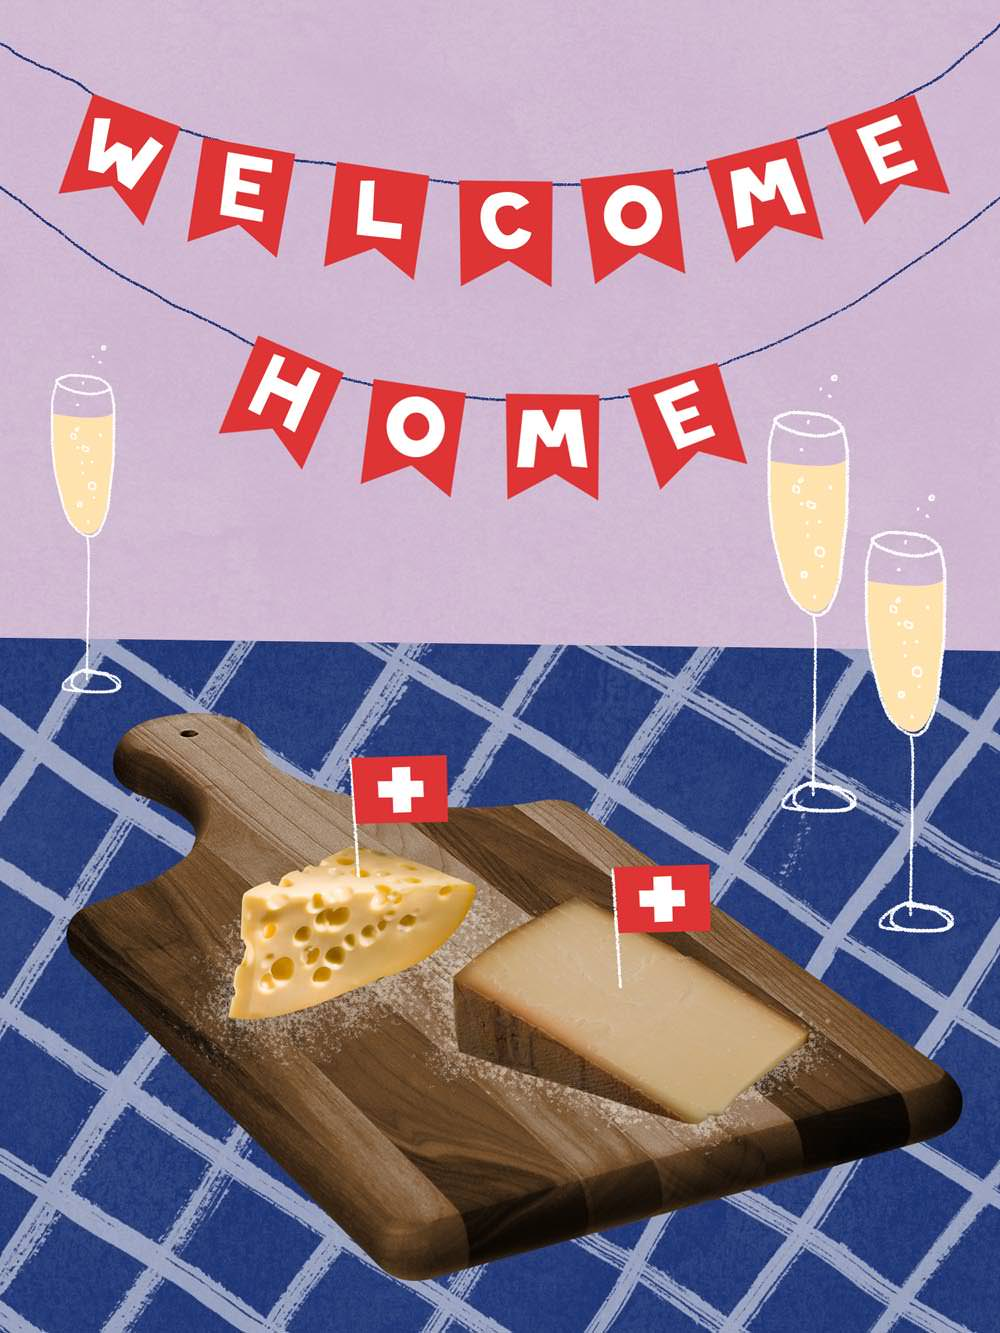 Welcome Home - NN292